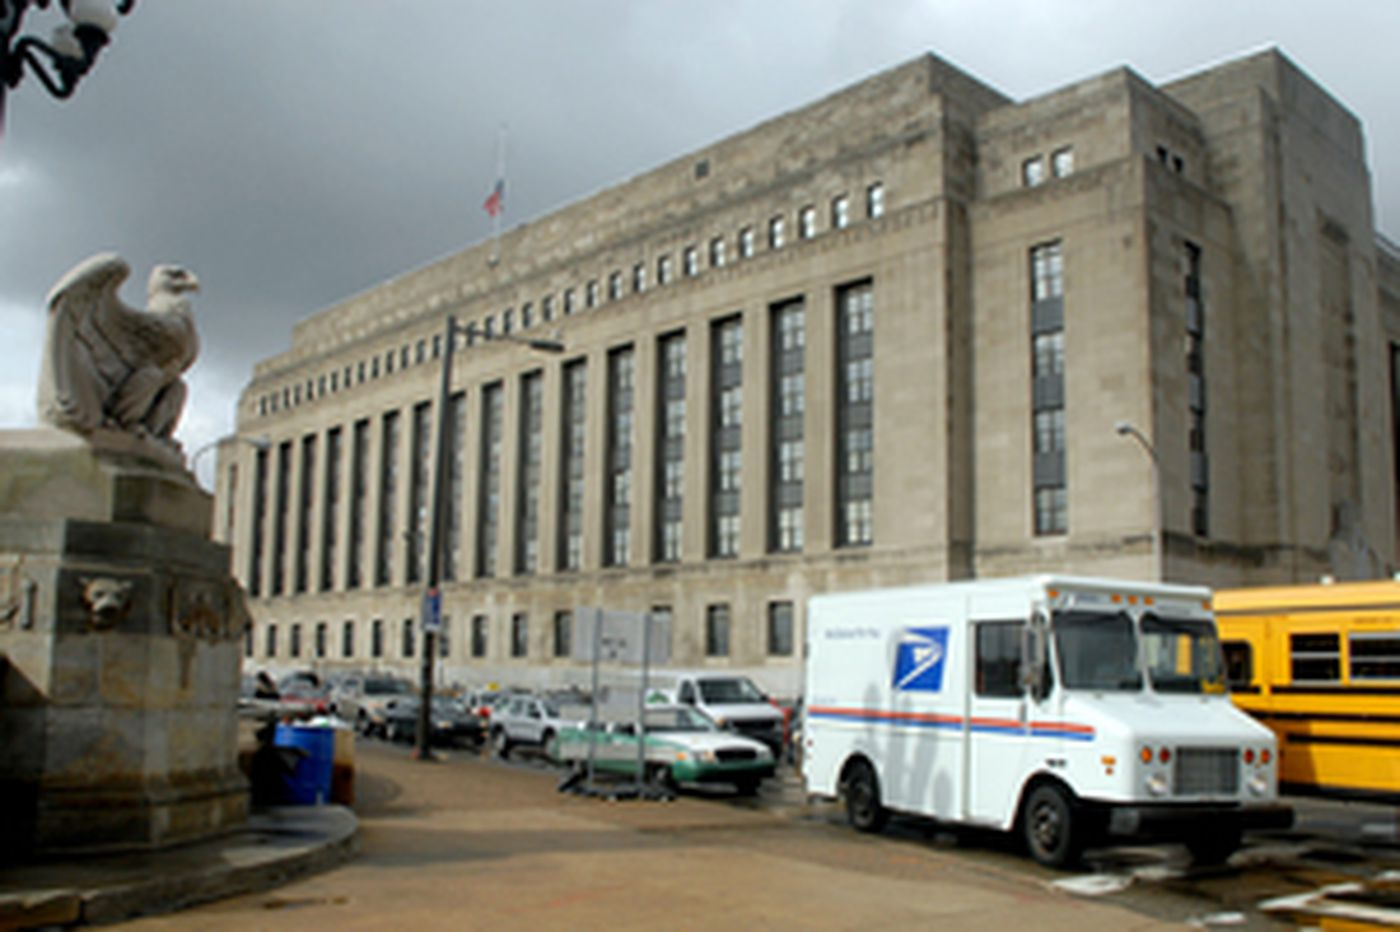 Surprising details emerge on Post Office sale